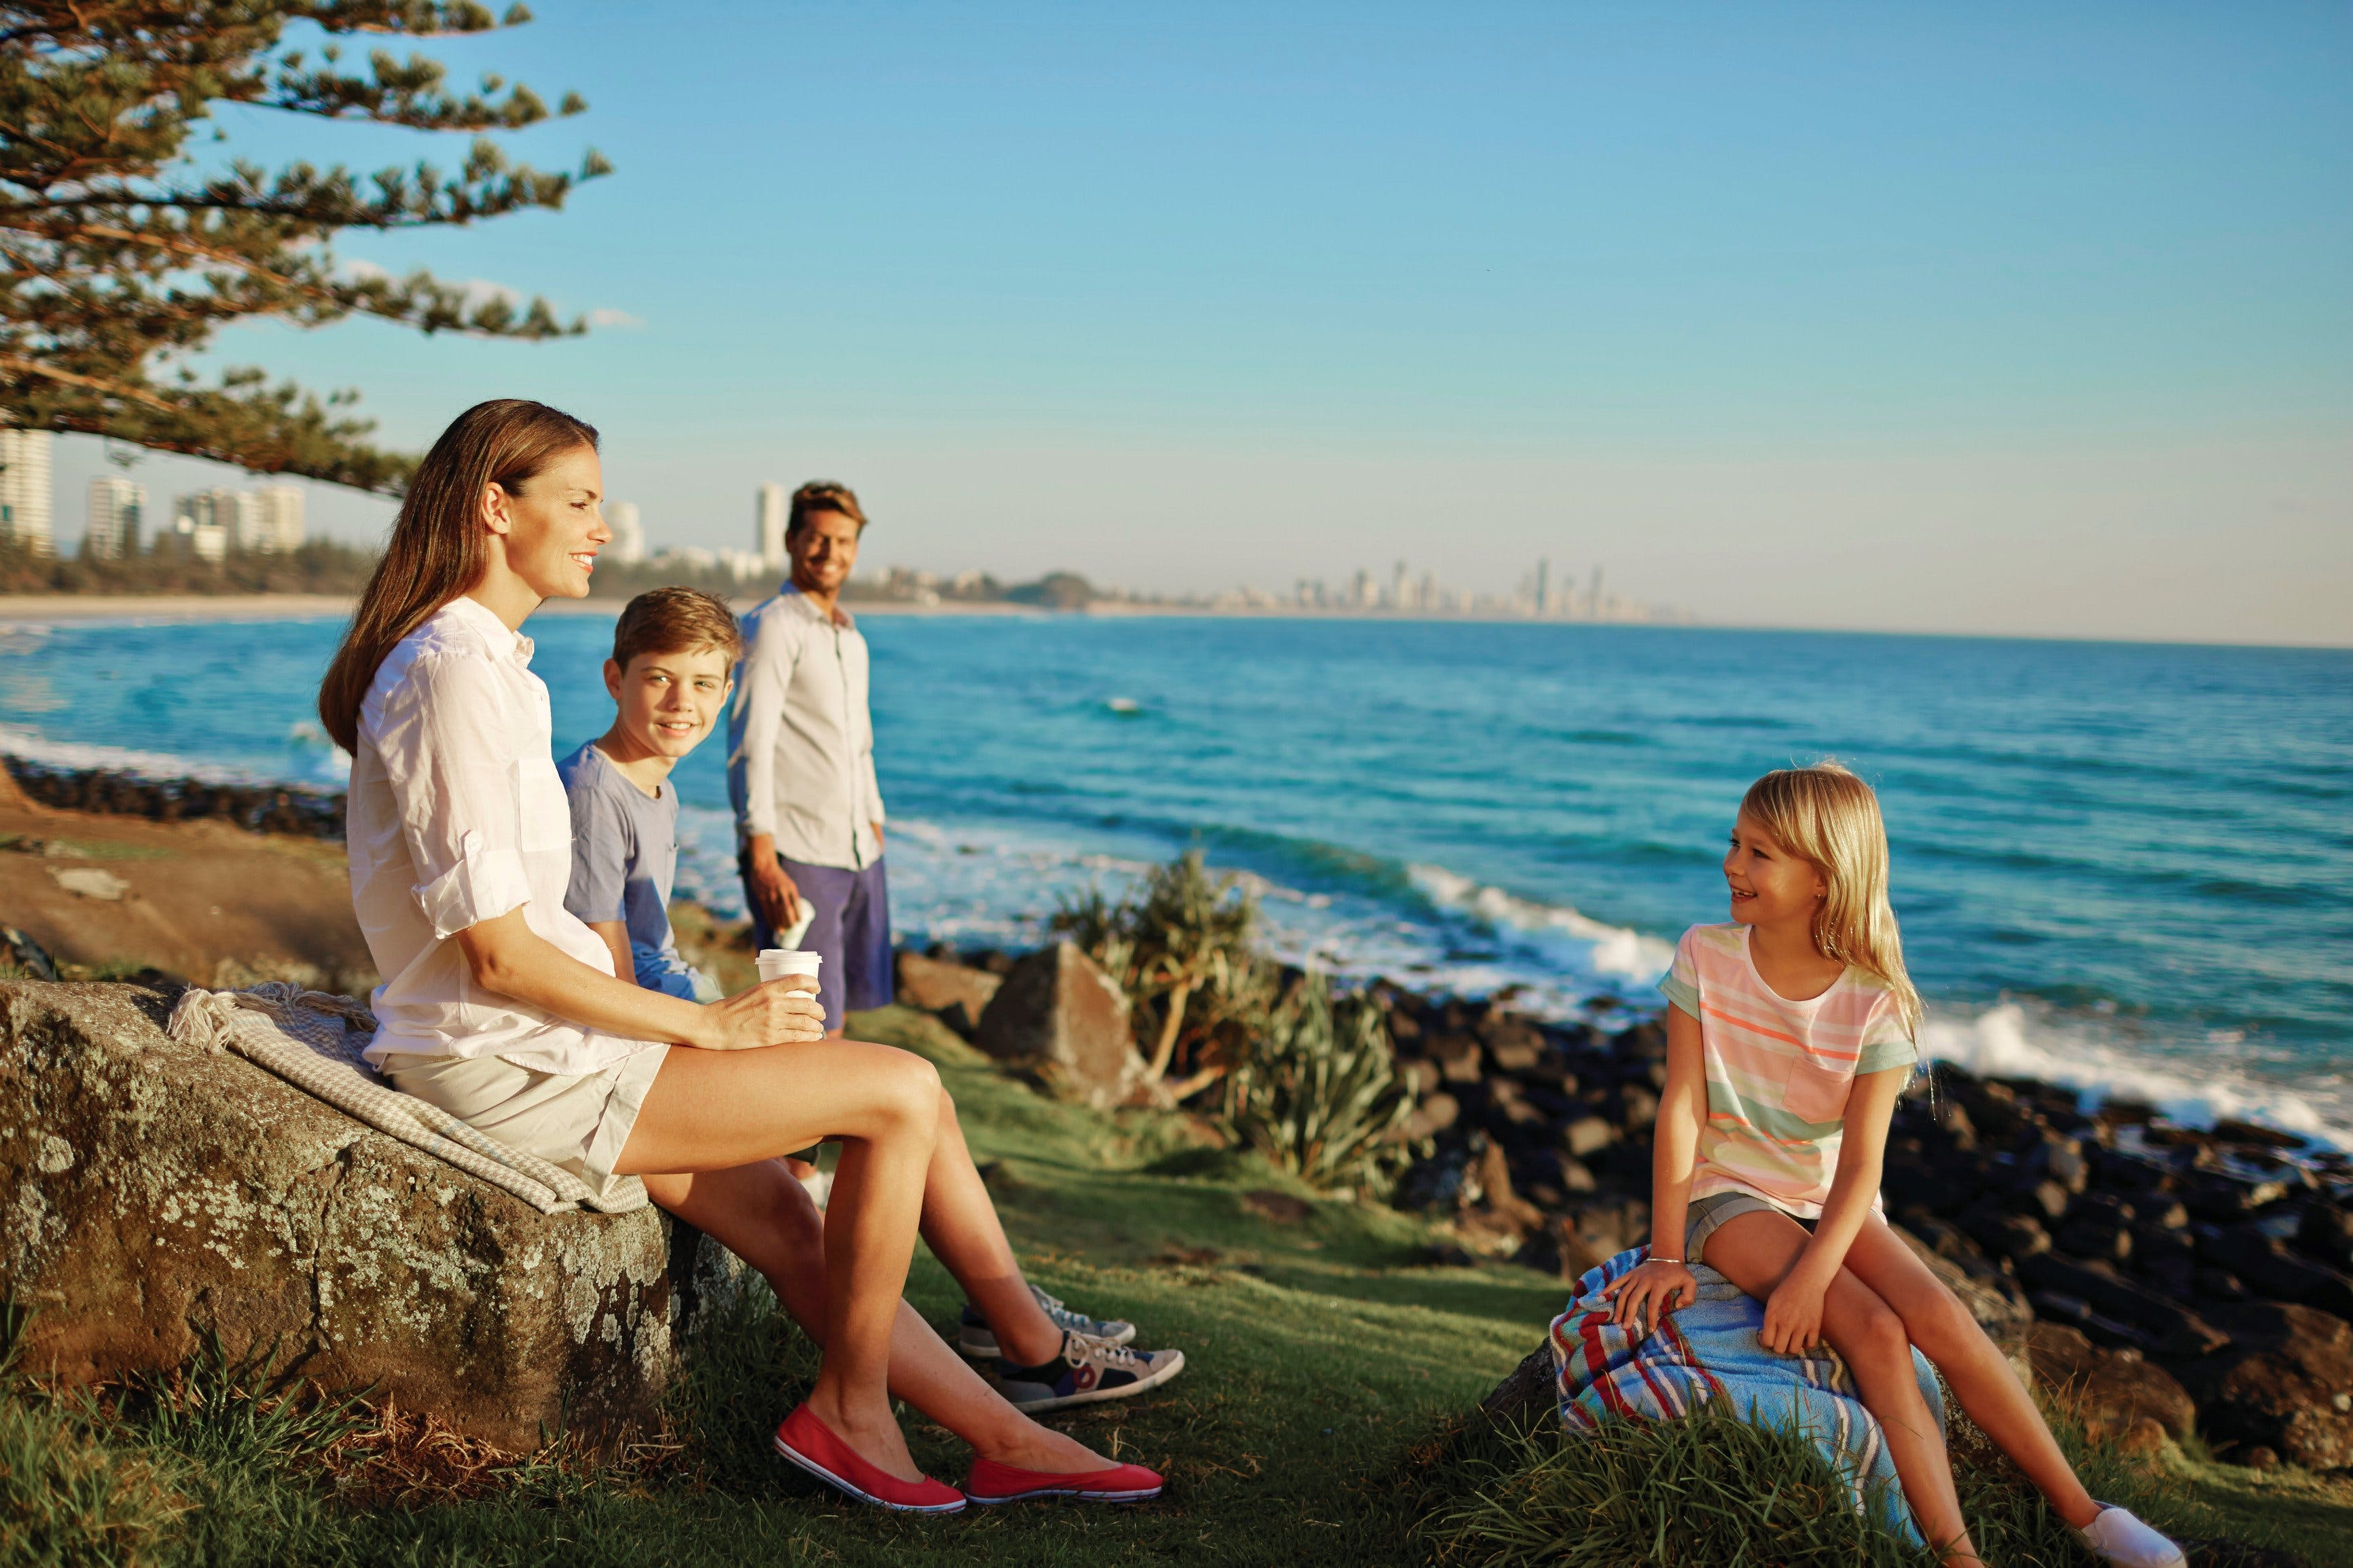 Oceanview Walk Burleigh Head National Park - Accommodation Burleigh